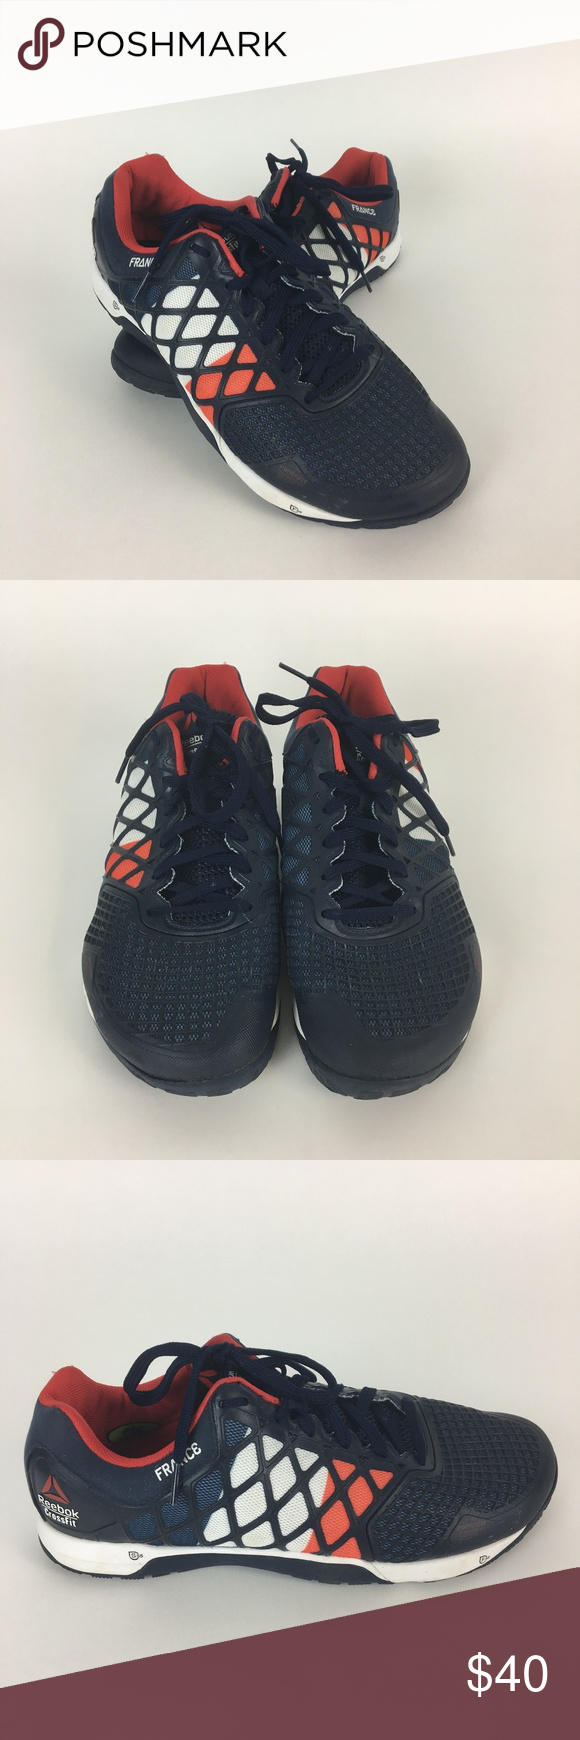 62d3216f63e85 Reebok Crossfit Nano 4 France Flag Training Shoes Great used condition men's  Reebok Crossfit shoes. Nano 4, France edition with the French flag on the  side ...